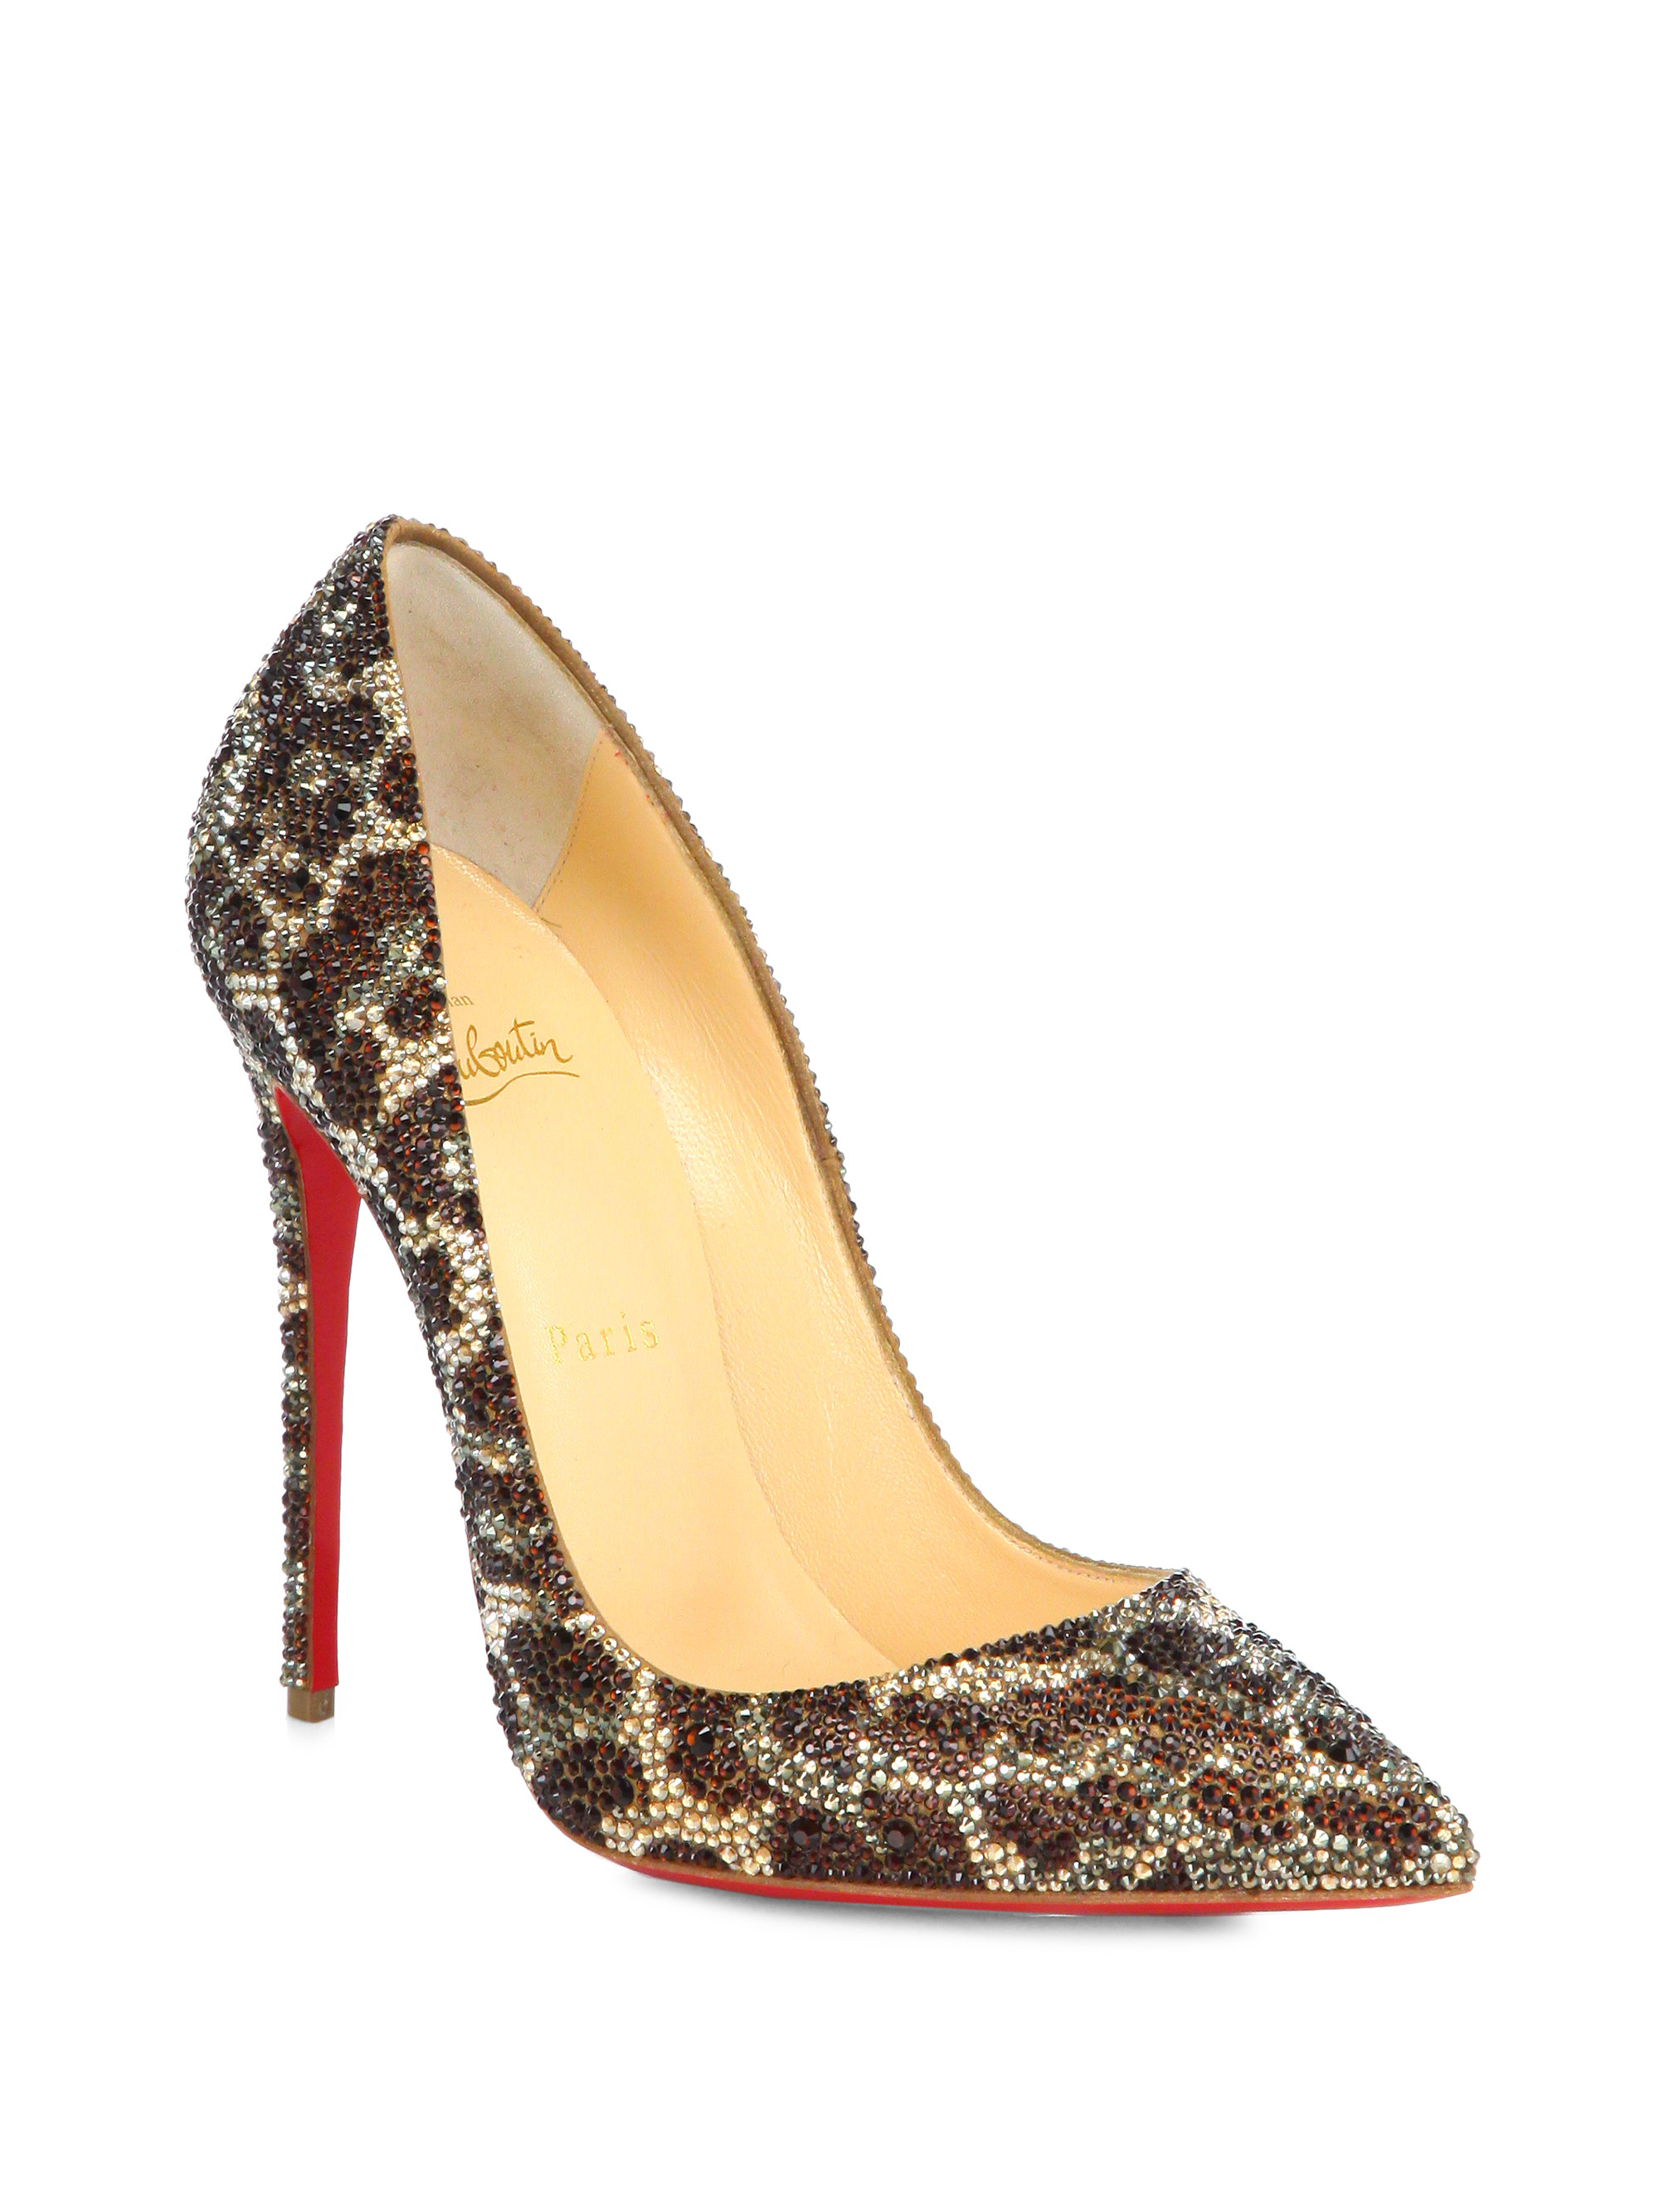 c4b49ae4b53 Gallery. Previously sold at  Saks Fifth Avenue · Women s Christian  Louboutin So Kate ...